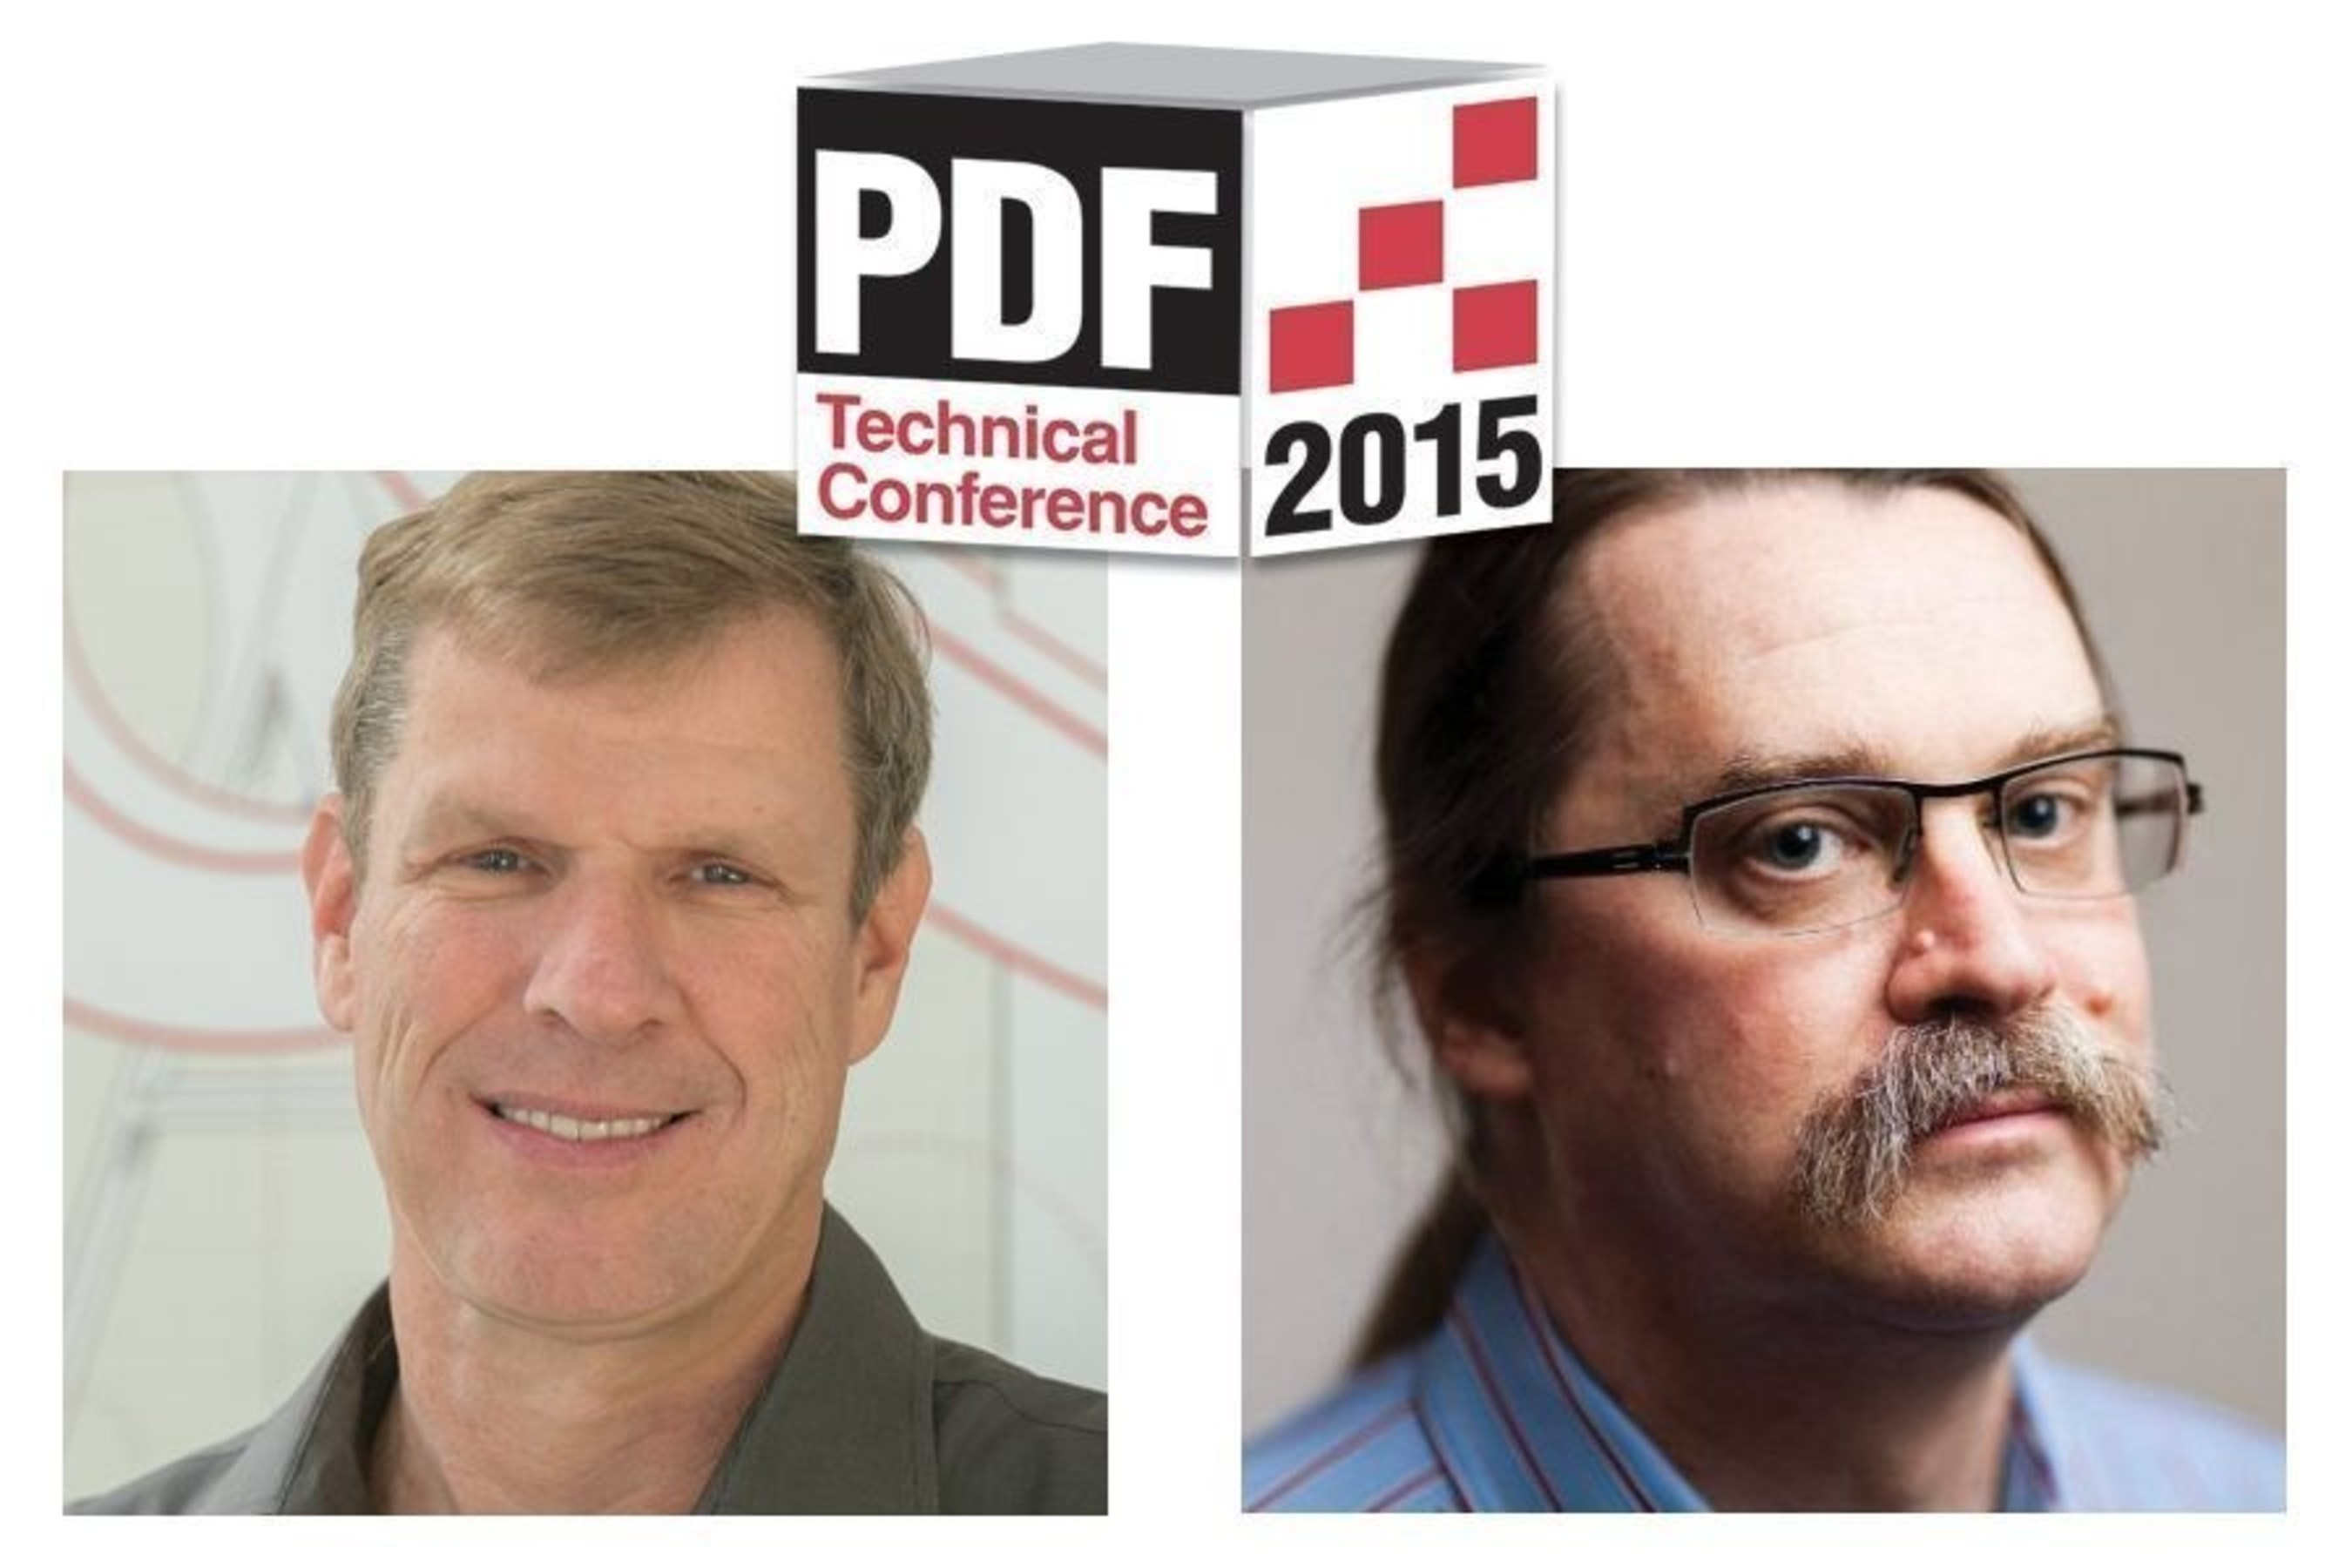 Phil Ydens and Jon Callas to Keynote at the PDF Technical Conference 2015